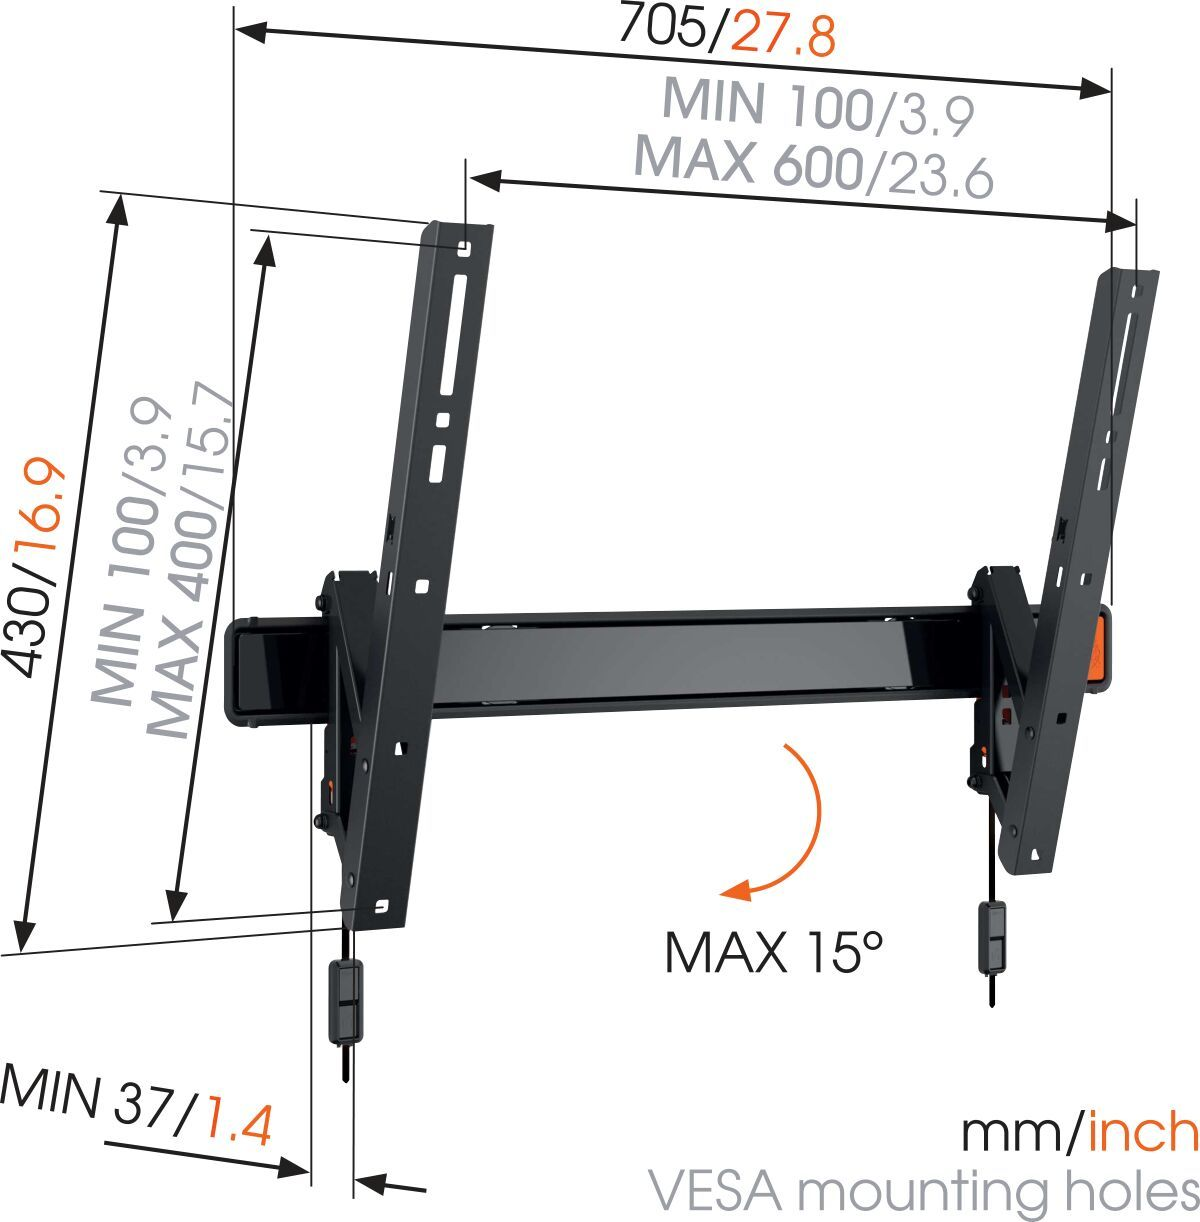 Vogel's WALL 2315 Tilting TV Wall Mount - Suitable for 40 up to 65 inch TVs up to kg - Tilt up to 15° - Dimensions